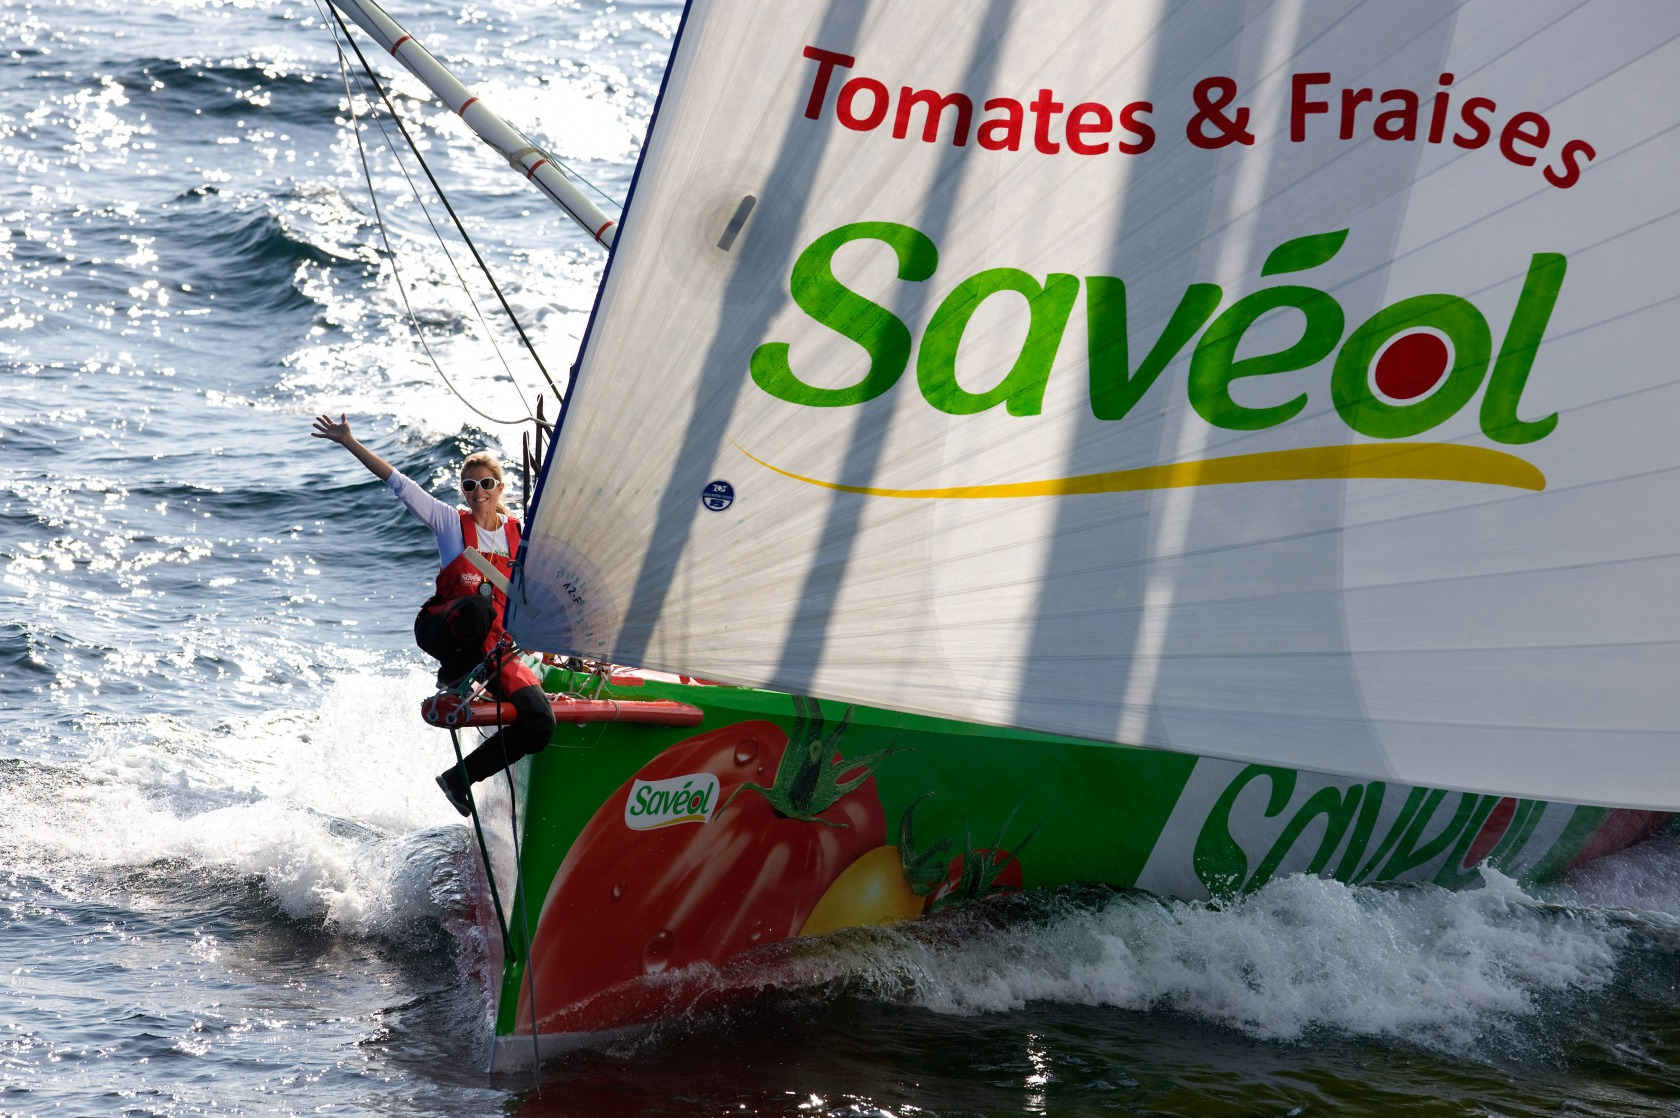 SAILING - SAVEOL - PRE VG 2012-2013 - 06/09/12 - PORT-LA-FORET (FRA) - PHOTO JEAN-MARIE LIOT / DPPI - AERIAL VIEW - SKIPPER SAMA